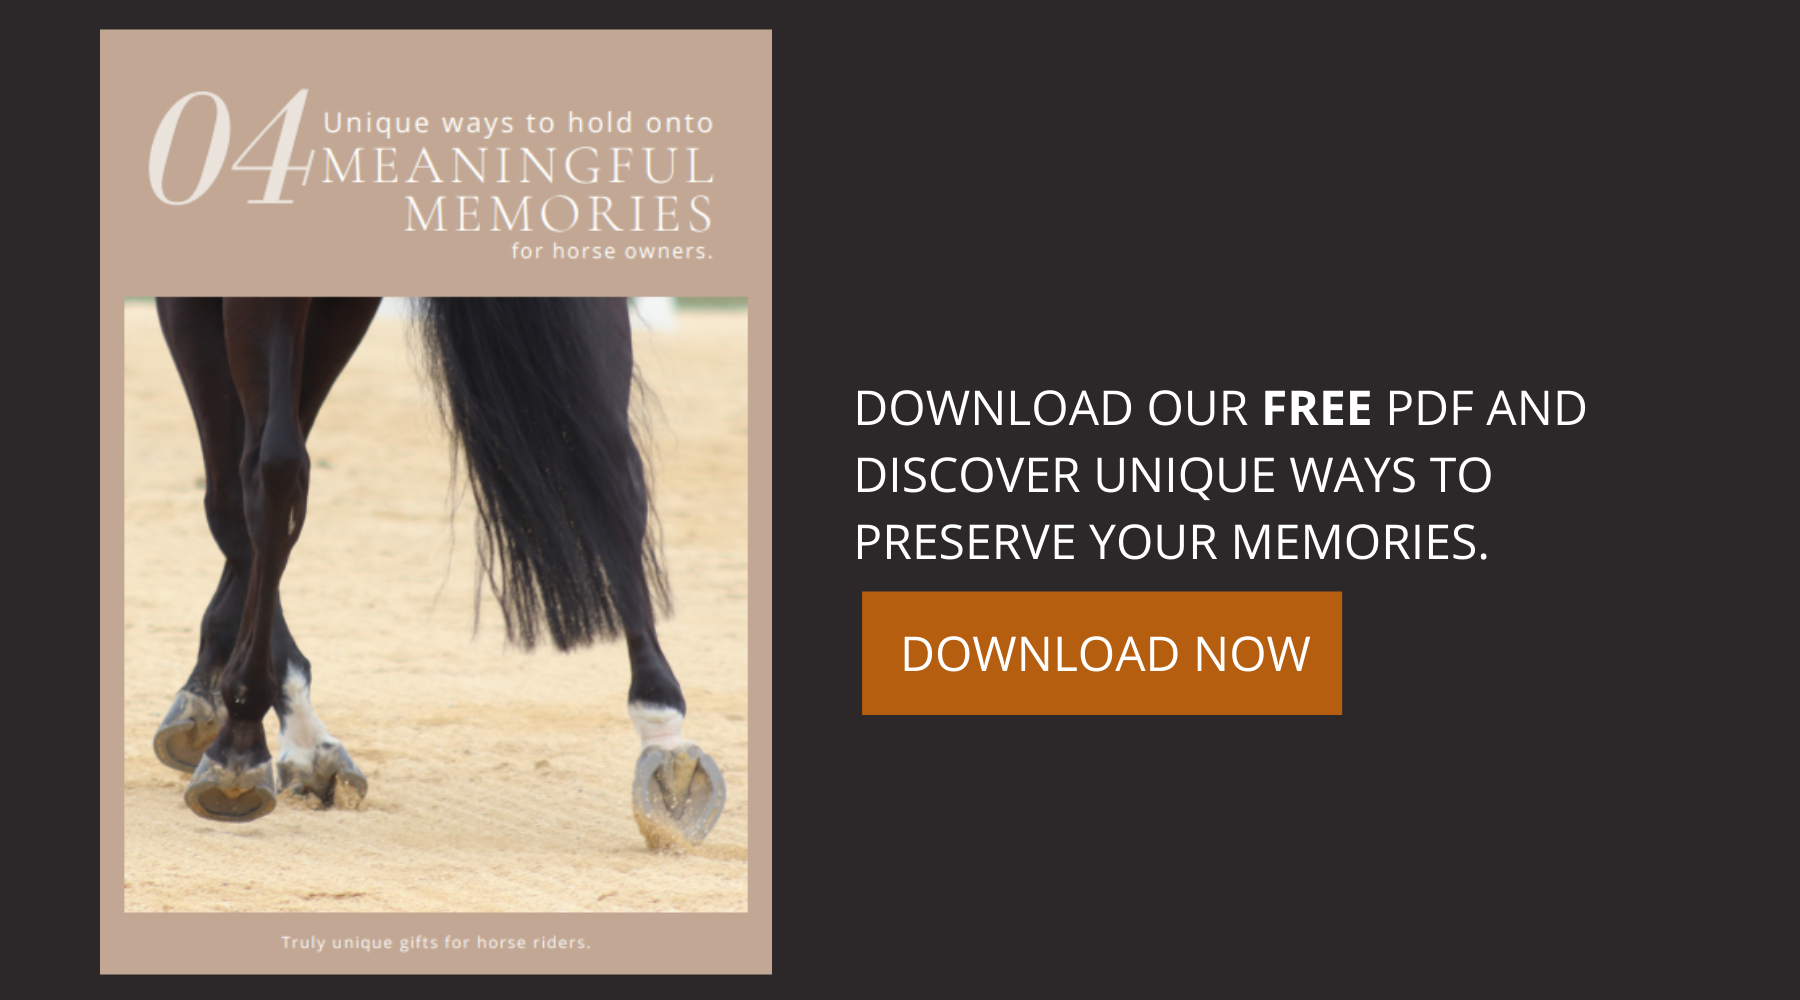 Download your free copy of 4 Unique Ways to Hold Onto Meaningful Memories for Horse Owners